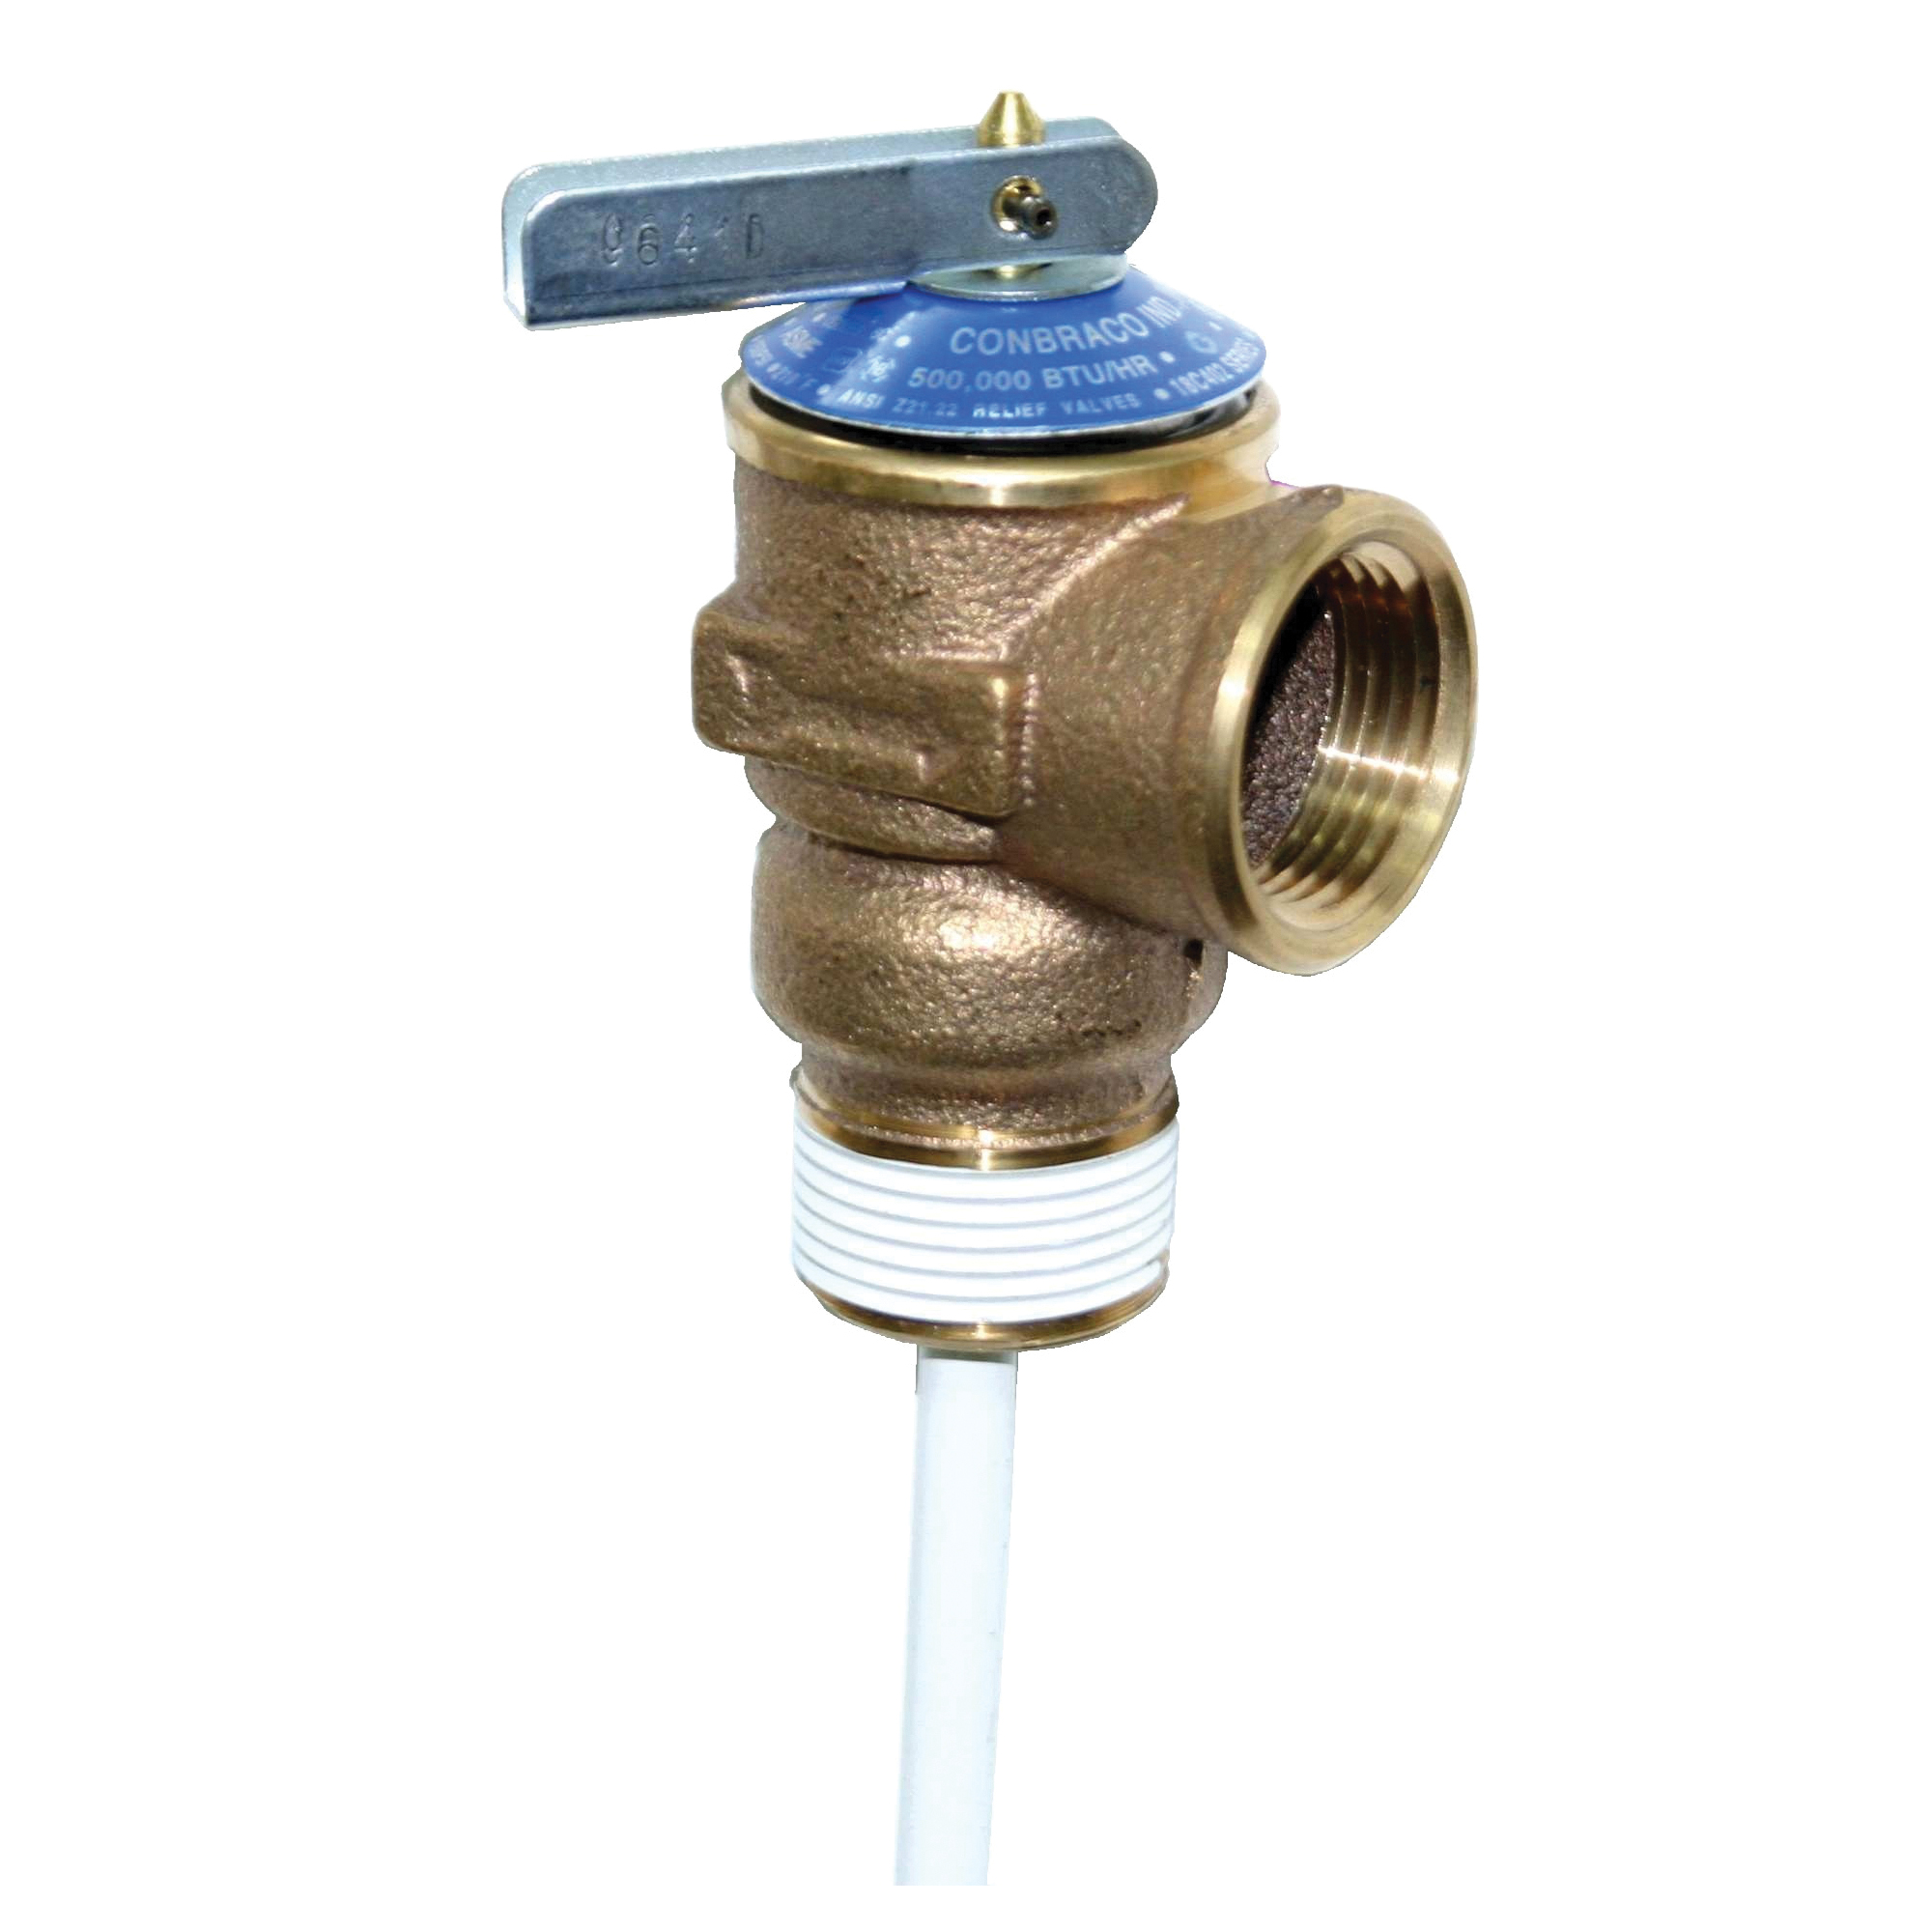 Apollo™ 18C-402-30 18C400 Temperature and Pressure Relief Valve, 3/4 in, NPT, 150 psi, Bronze Body